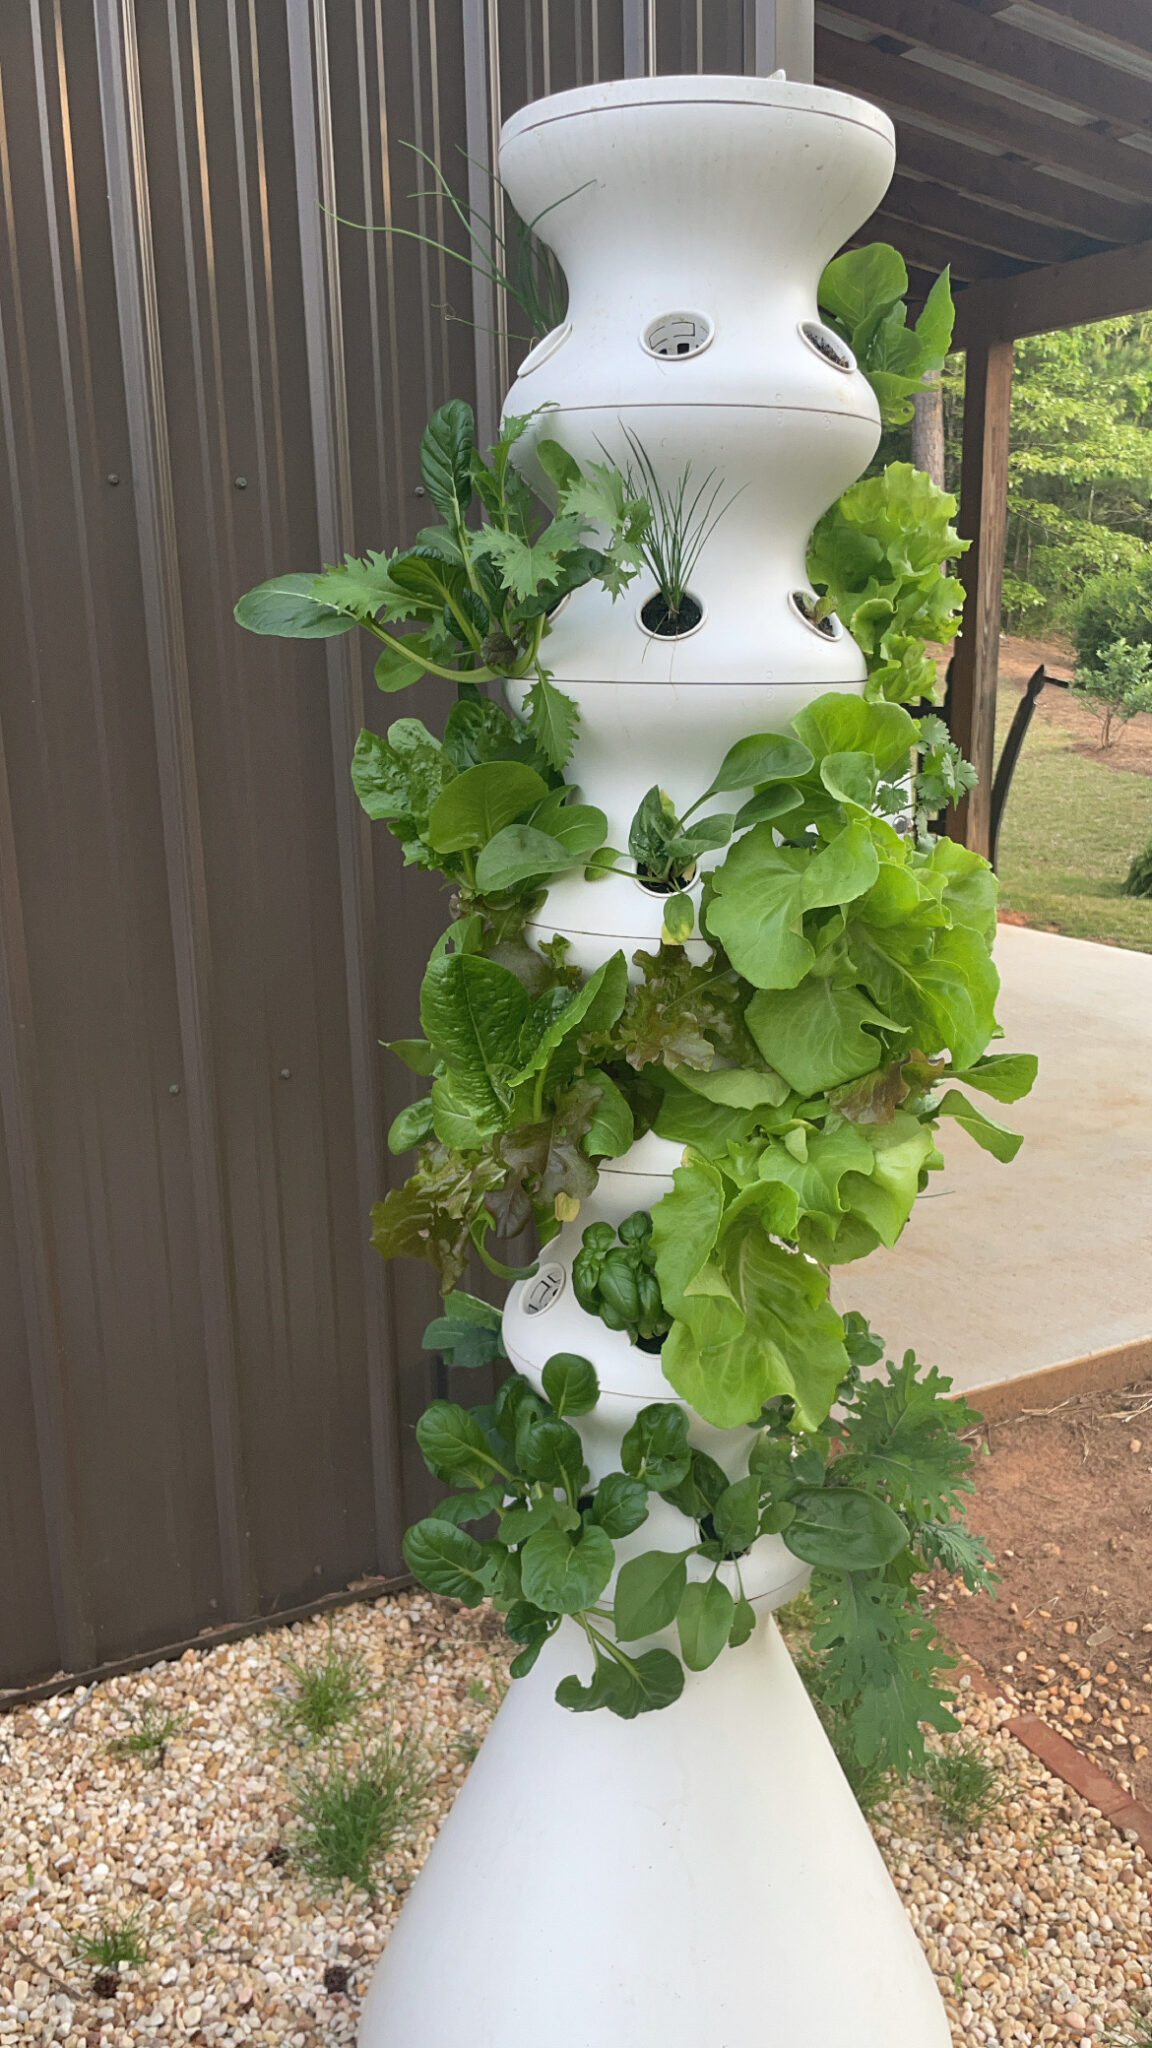 easy hydroponic garden, featured by top Atlanta lifestyle blogger, Moderately High Maintenance | Hydroponic Garden by popular Atlanta lifestyle blog, Moderately High Maintenance: image of leafy greens growing out of The Farmstand hydroponic garden.